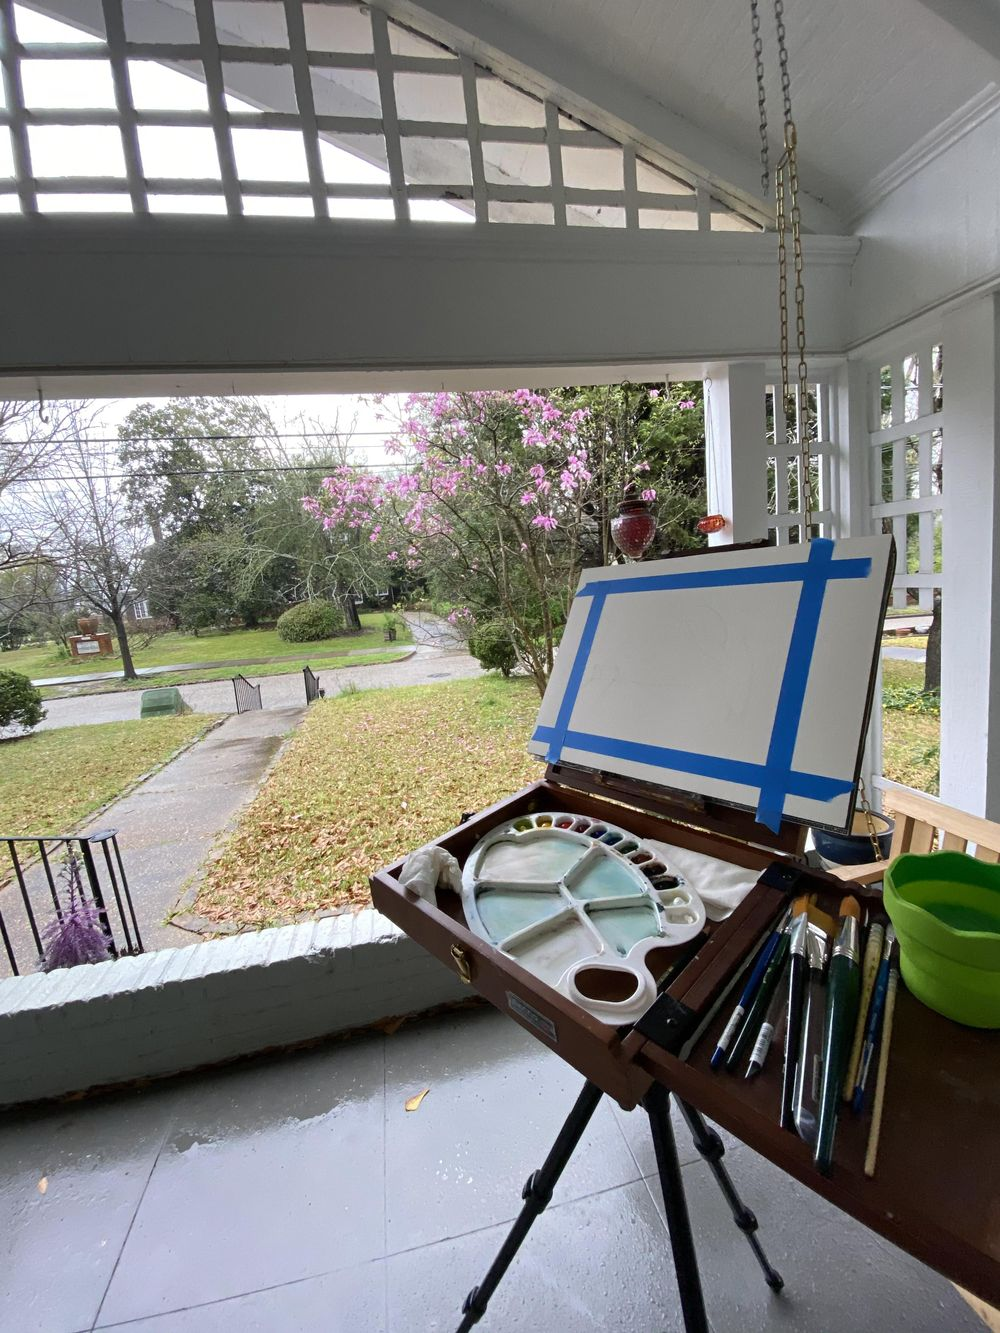 Plein Air Watercolor - image 1 - student project